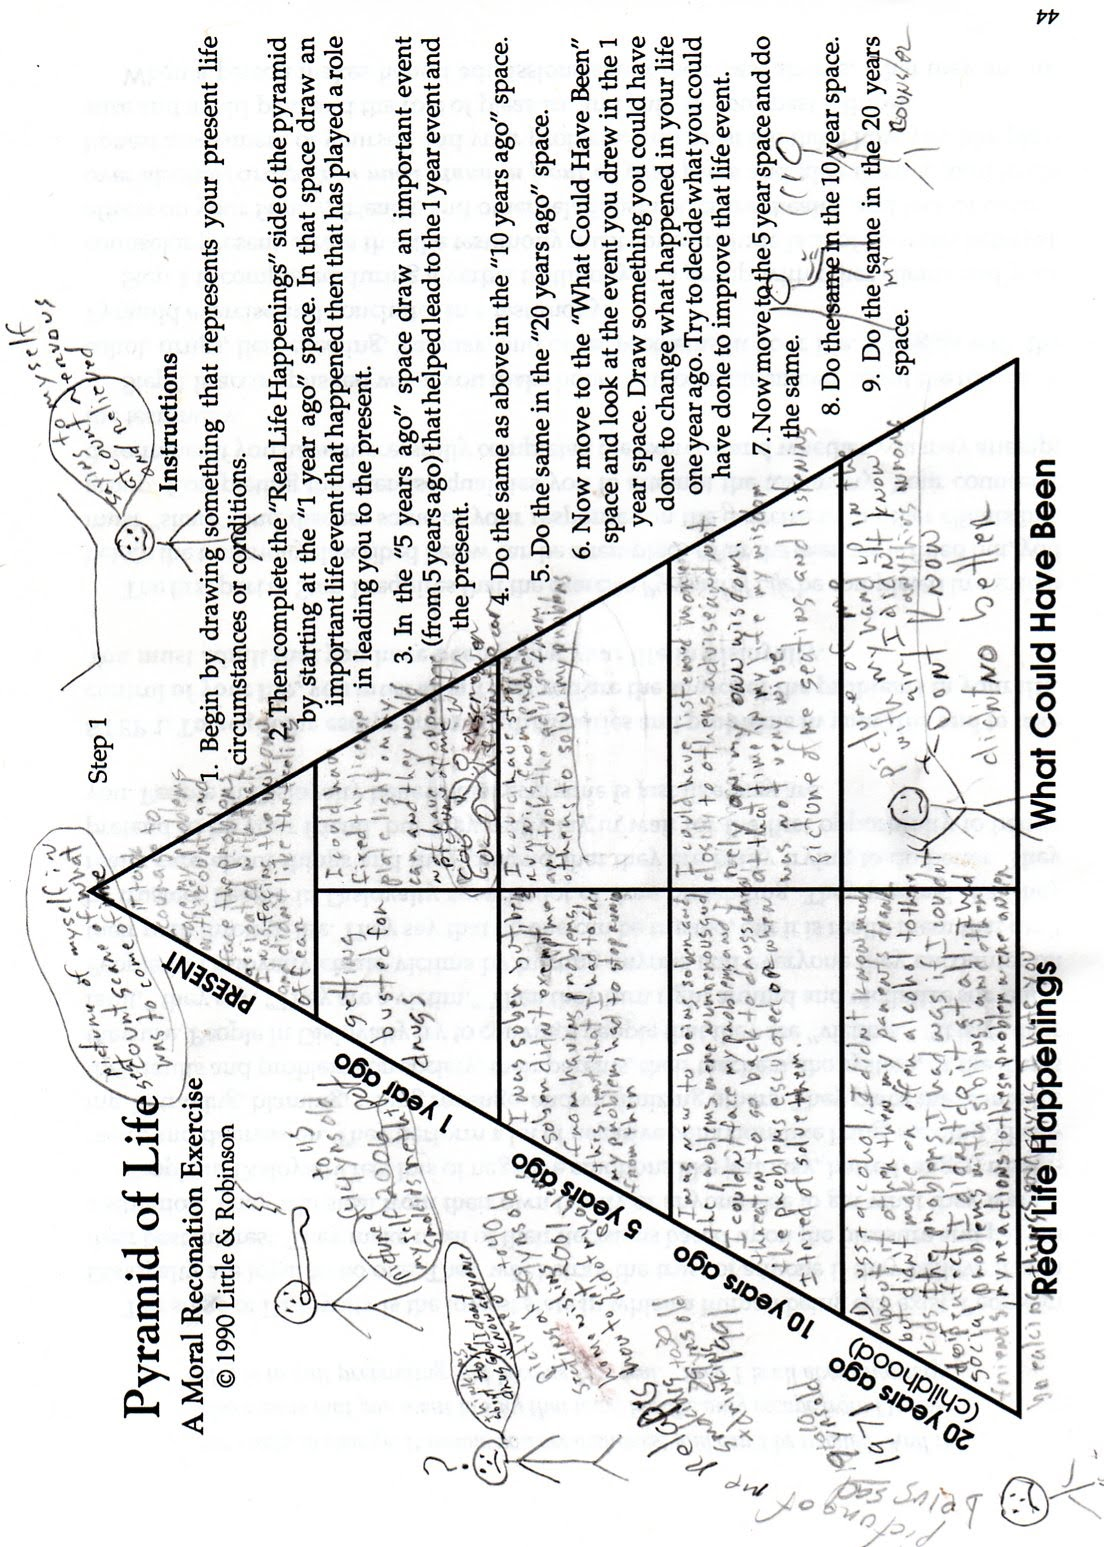 worksheet Aa Step 2 Worksheet drugcourt caryhayes2003 step 1 pyramidoflife jpg